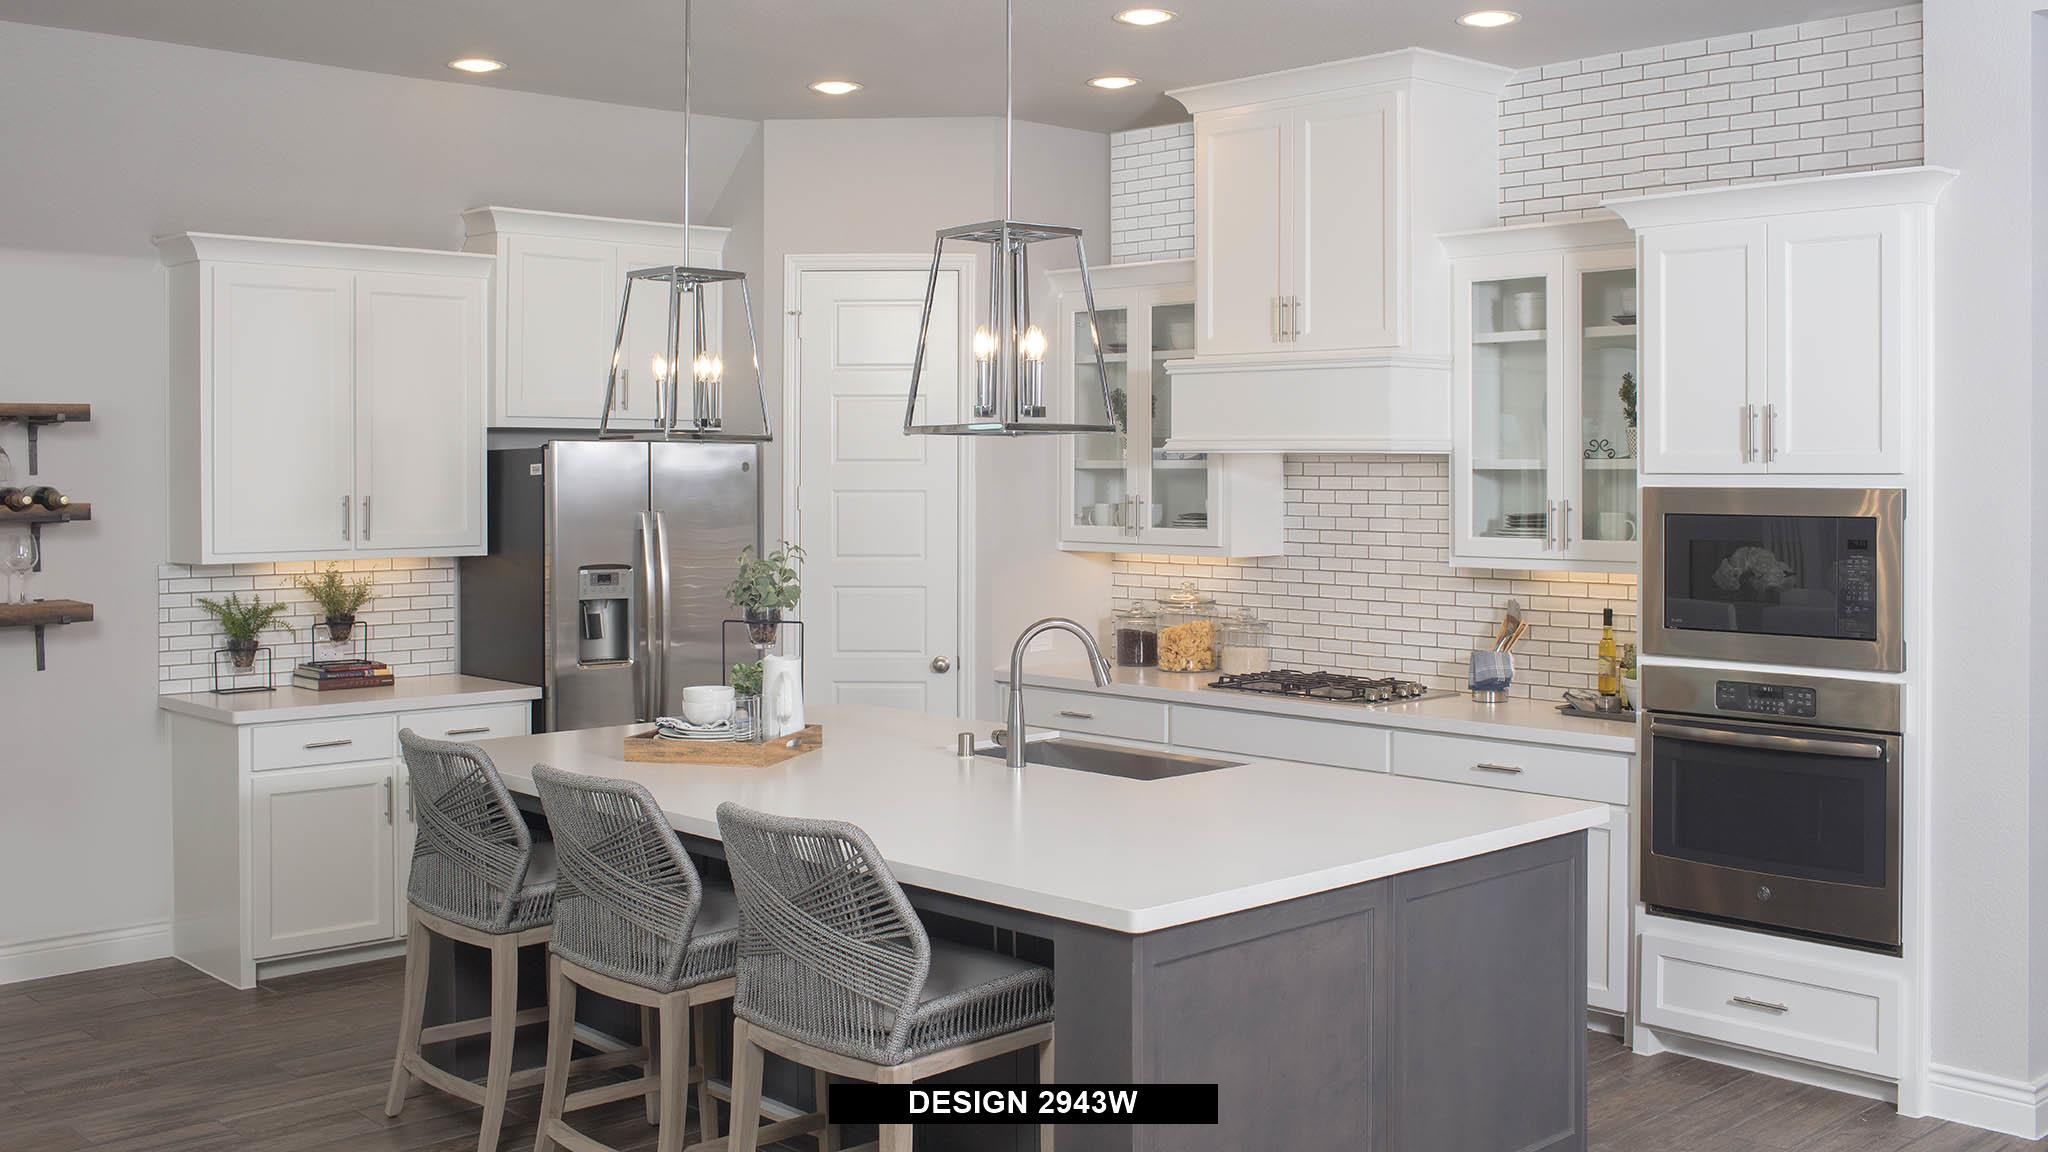 Kitchen featured in the 2943W By Perry Homes in Dallas, TX